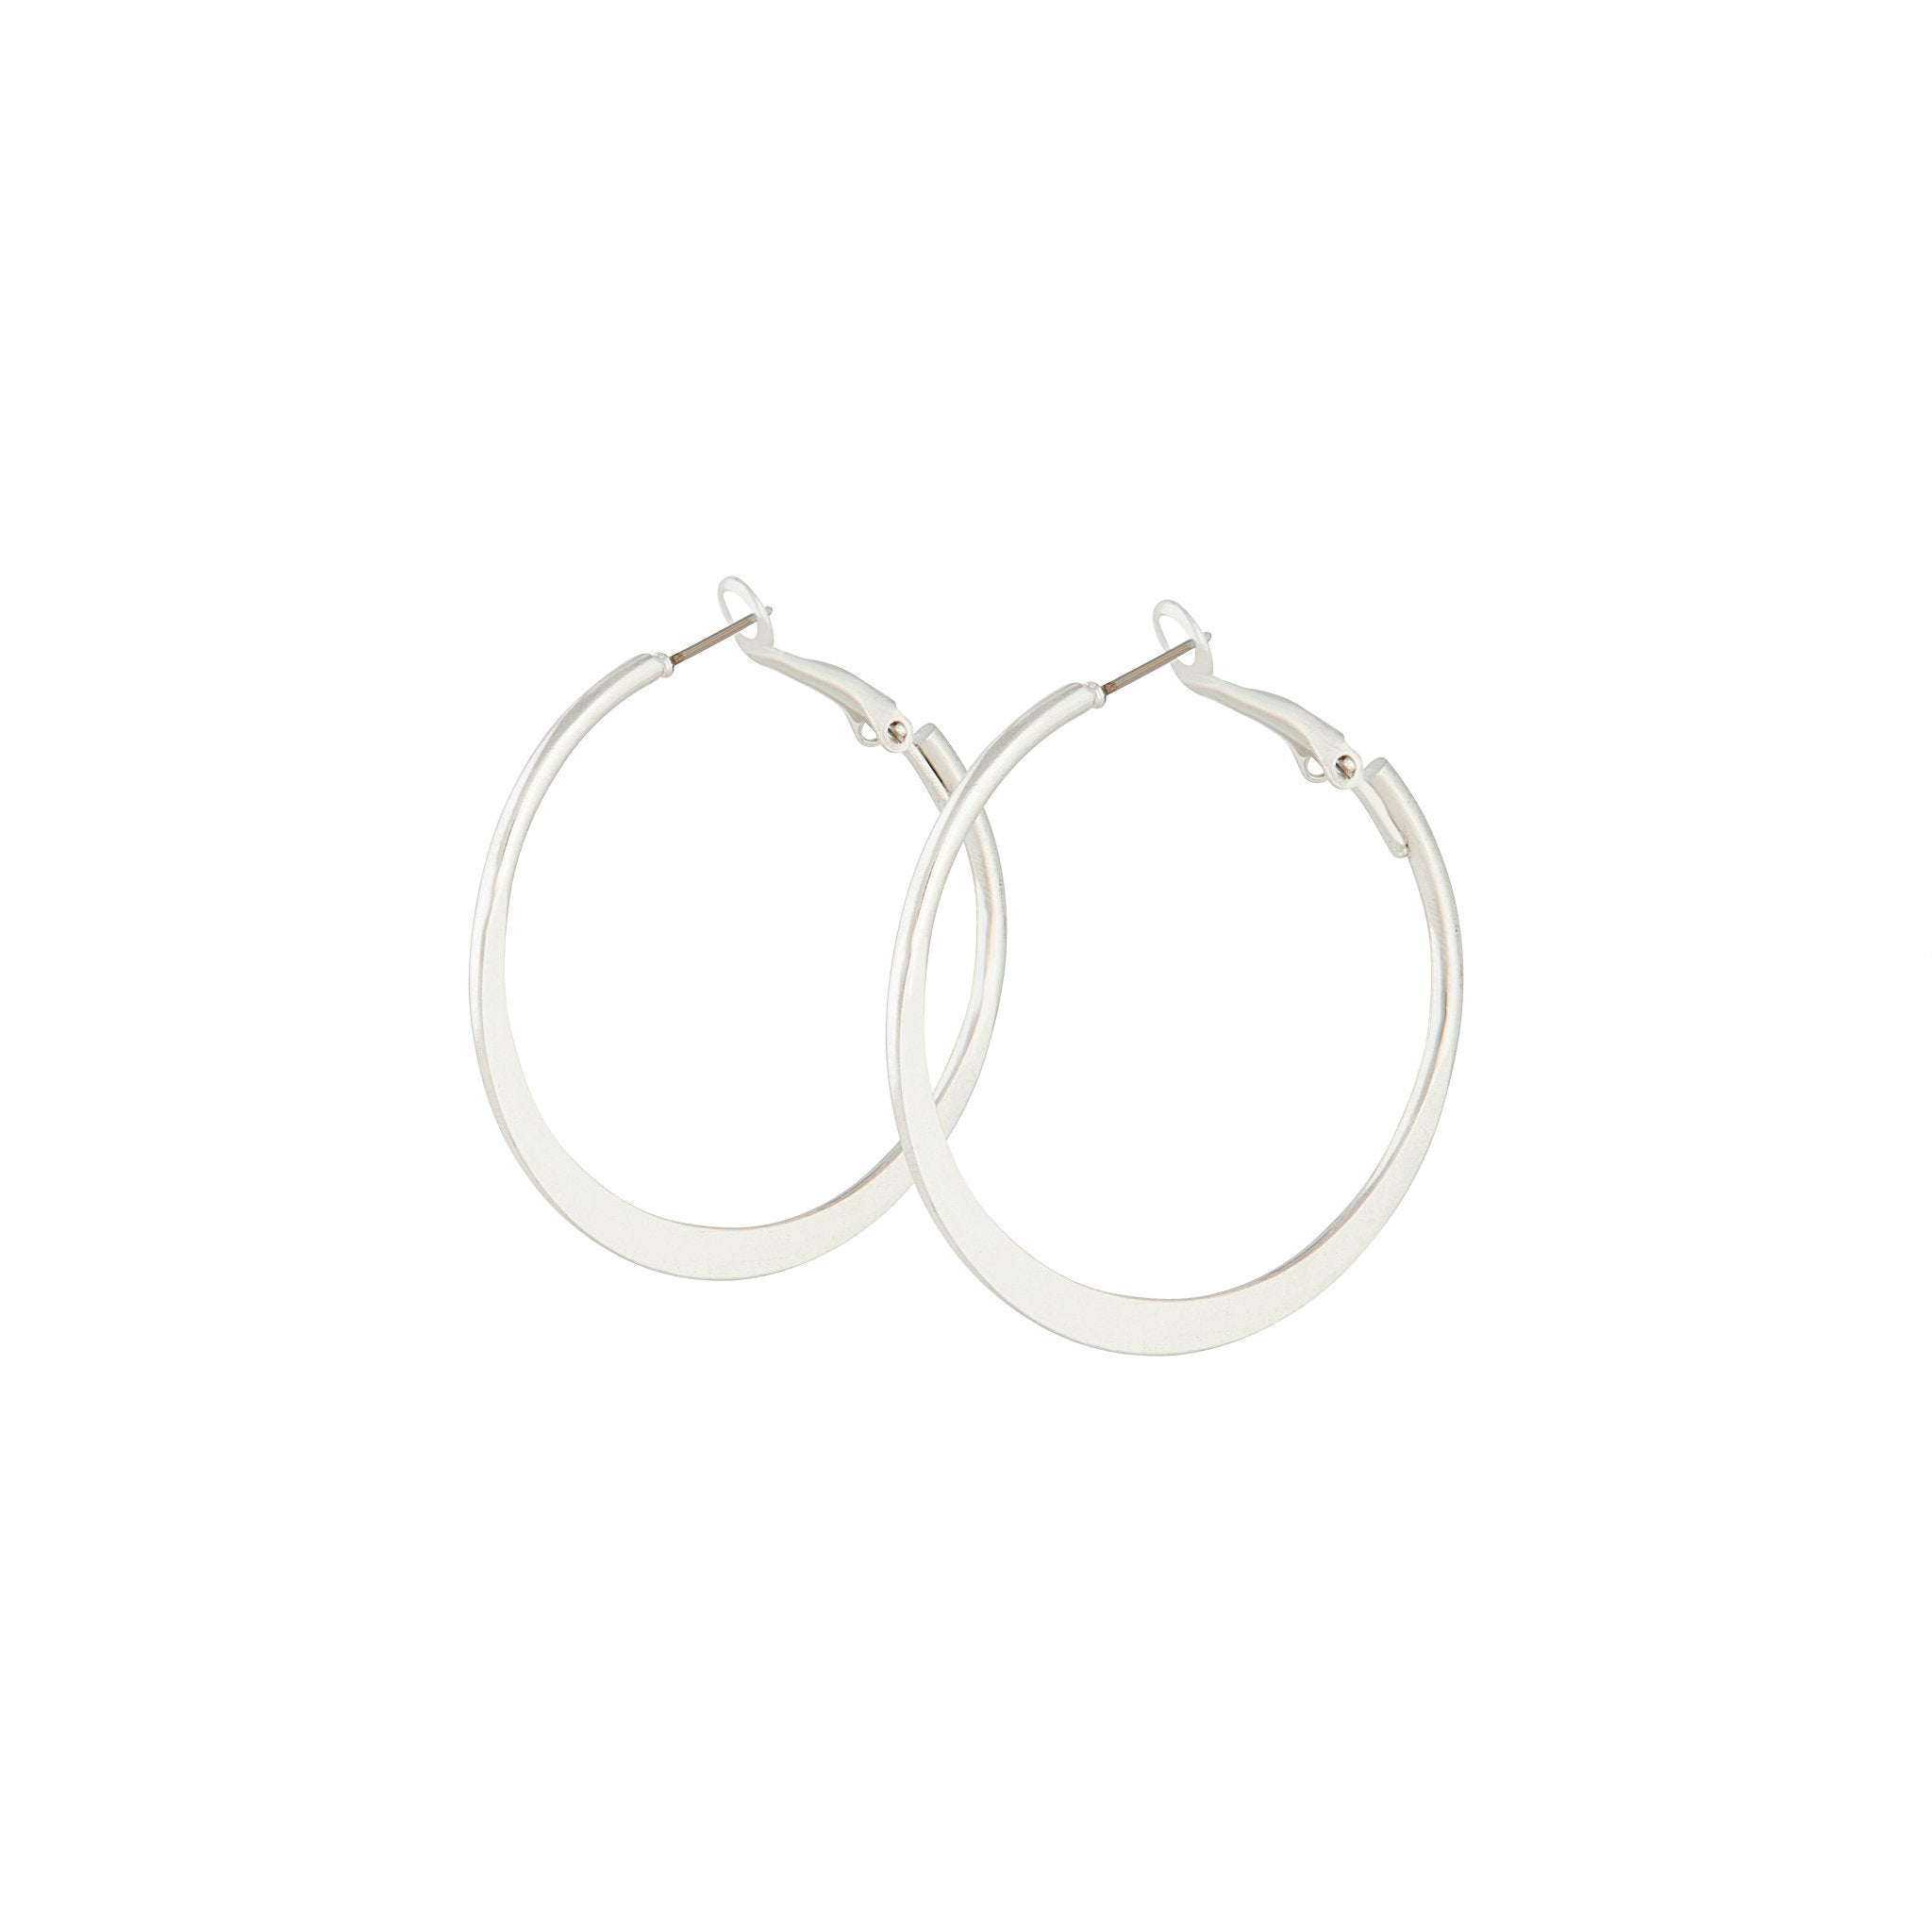 Silver Flat Bottom Hoop Earrings